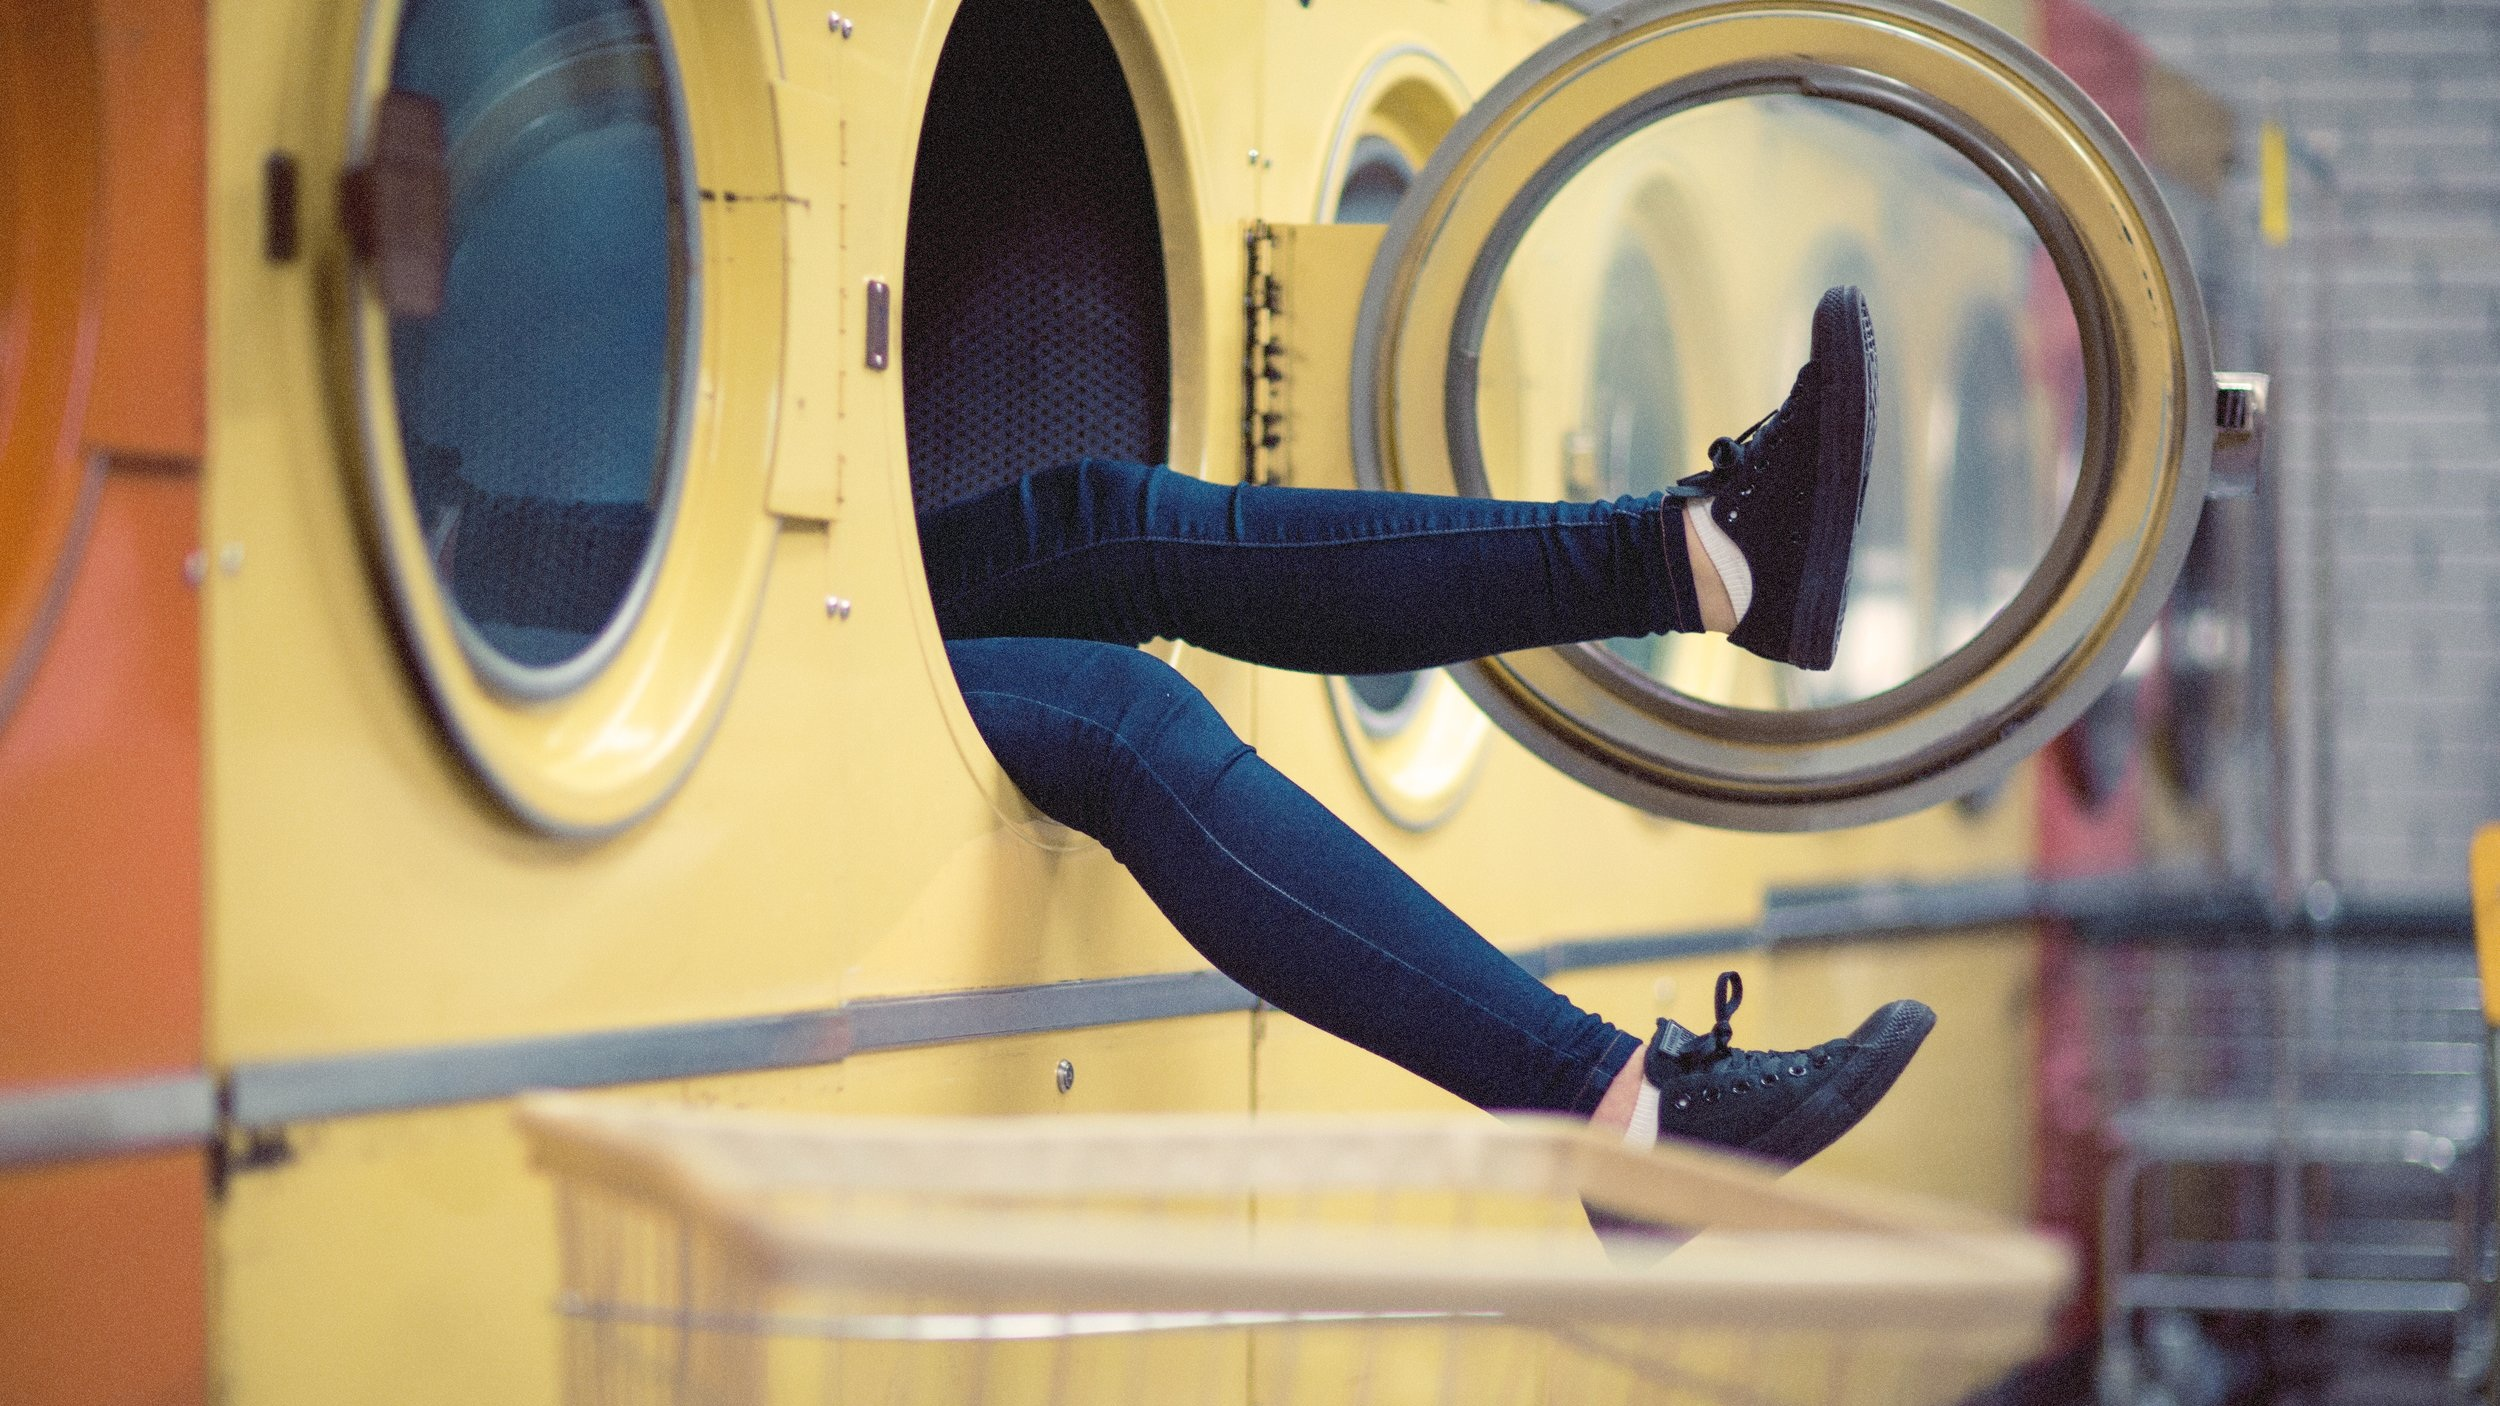 woman inside large yellow dryer with the door open and legs hanging out of